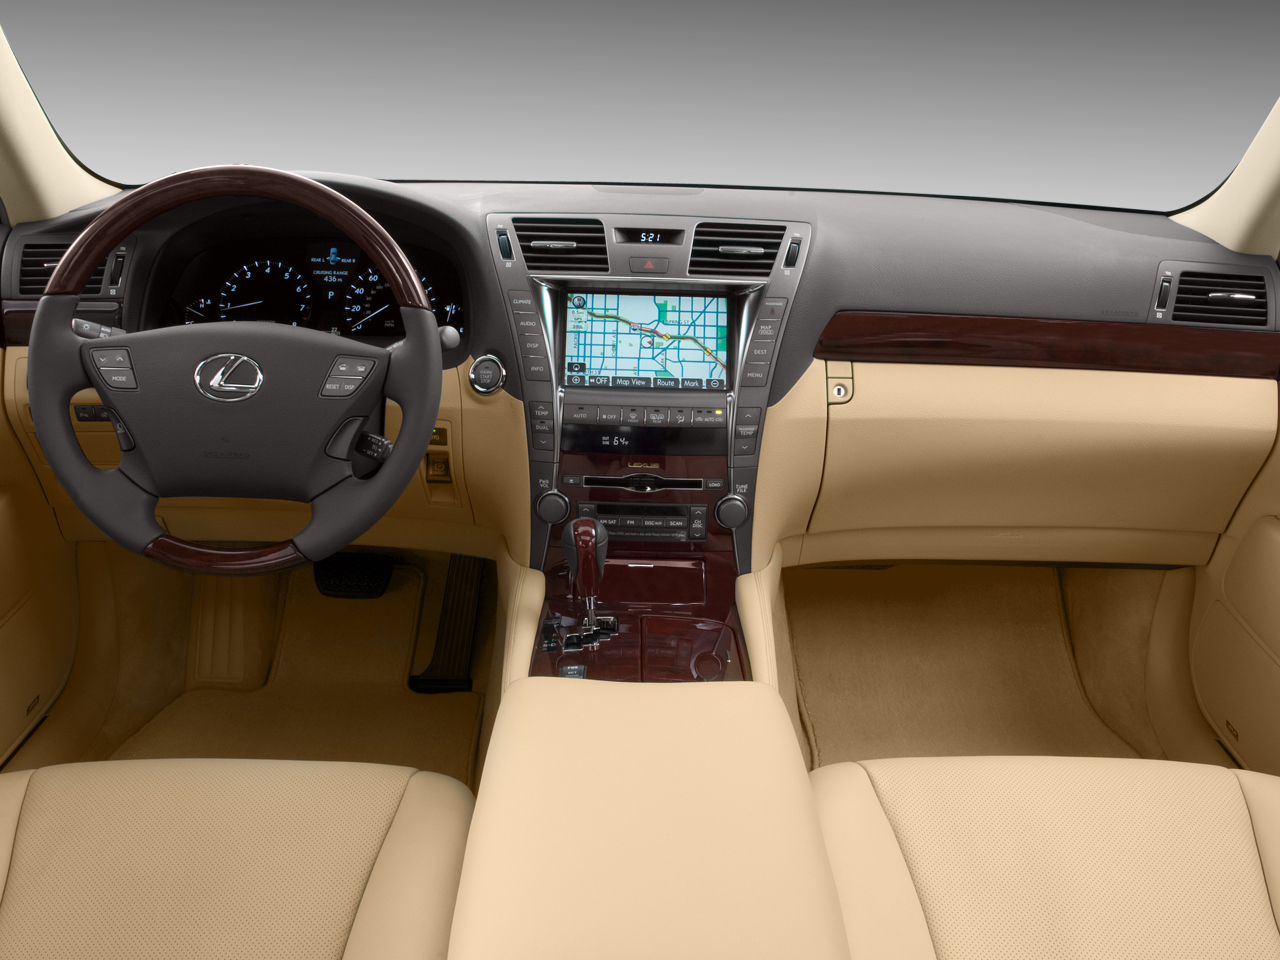 gx sport lexus used drive owned four technology pre door unit utility demo inventory wheel package